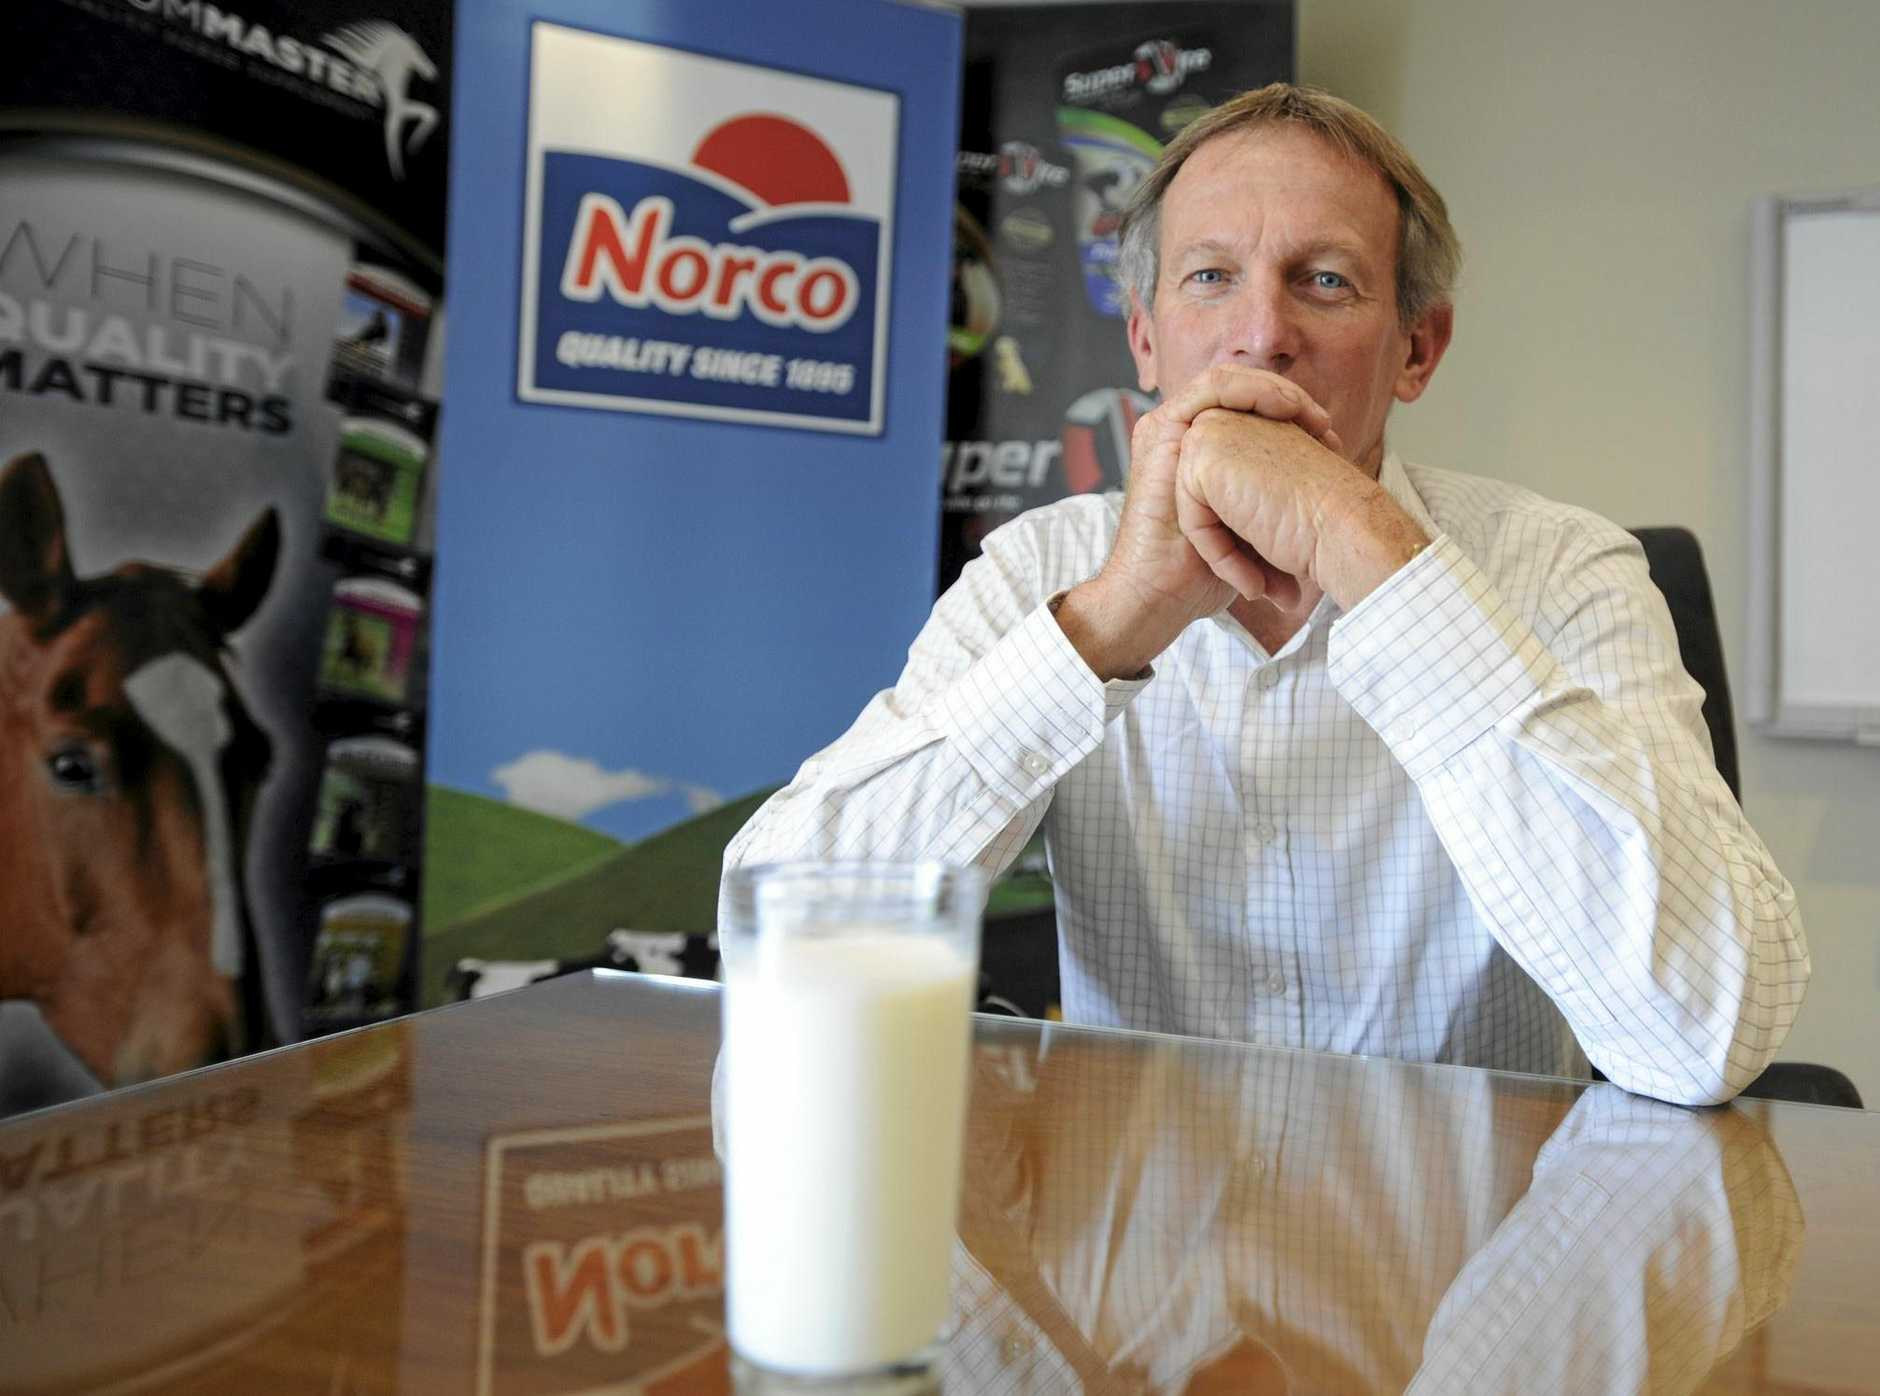 HONOURING AGREEMENTS: Norco Co-operative Ltd chair and acting chief executive Greg McNamara said the company will continue to honour their agreement with supplier farmers but now needs to find an alternative market for 300,000Lt milk.